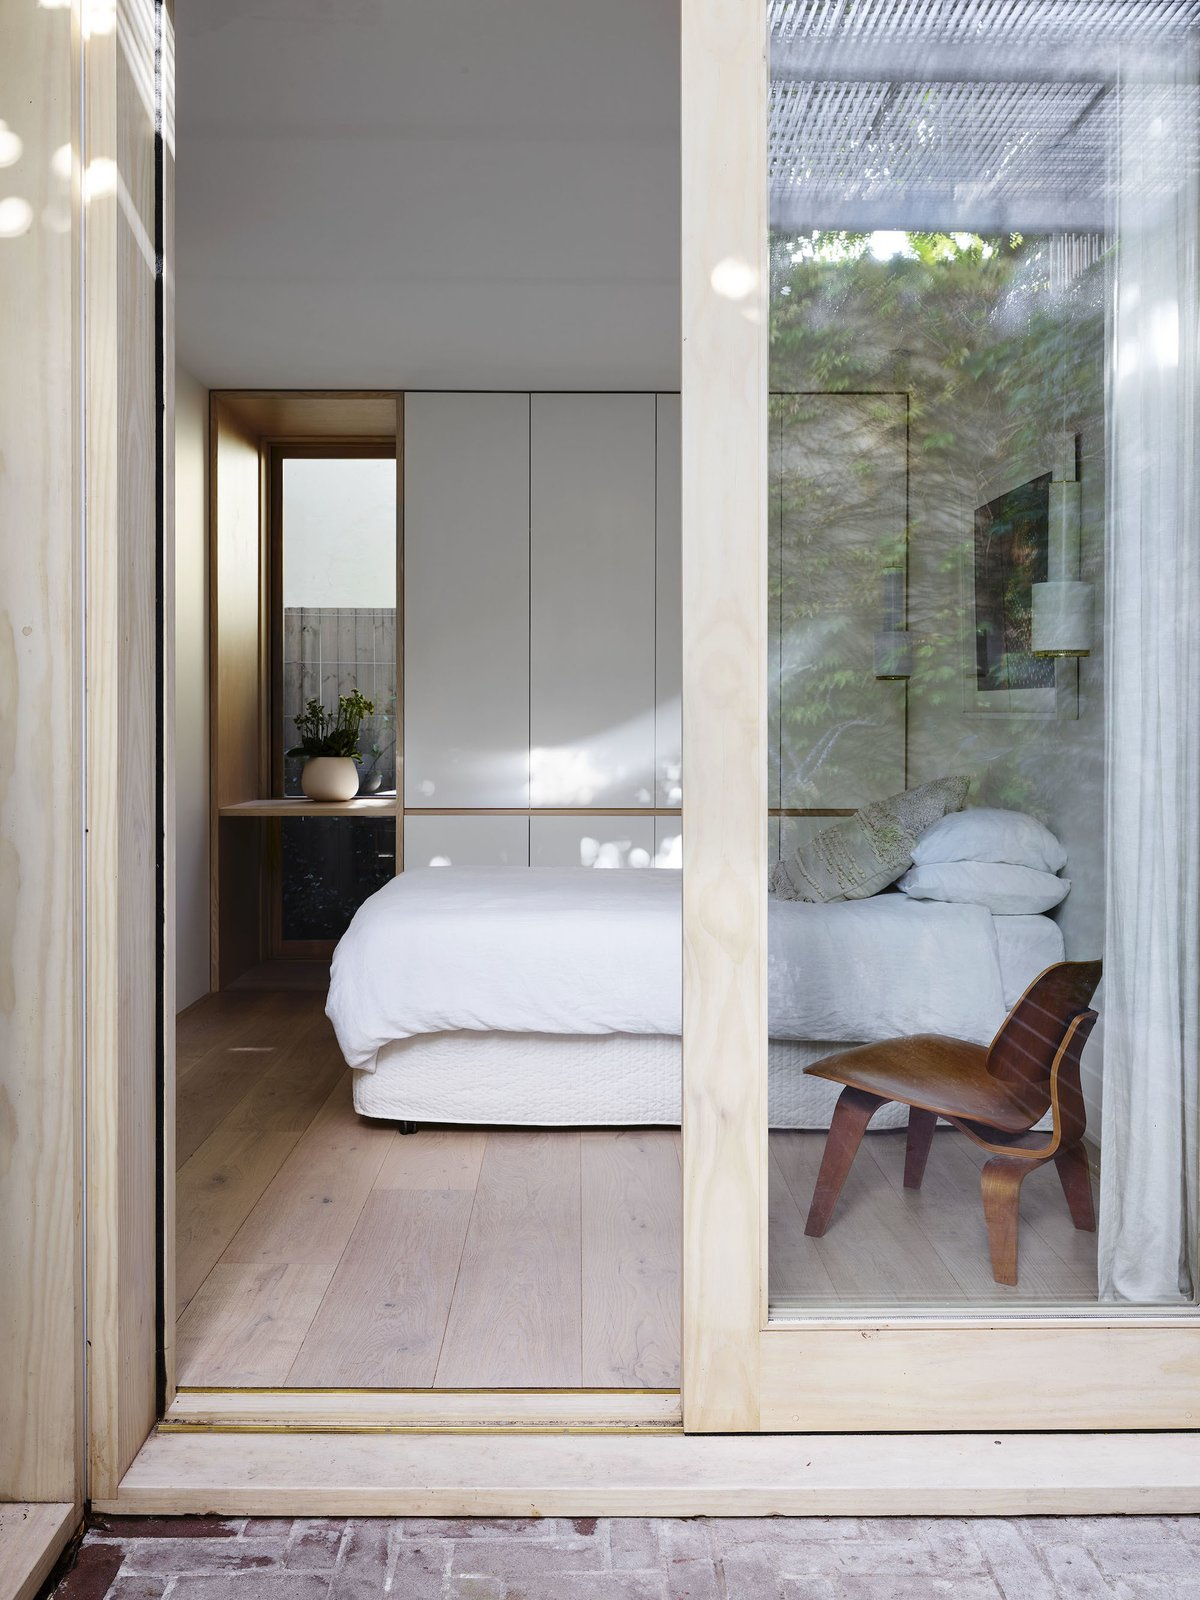 Bedroom in Tree House by Madeleine Blanchfield Architects